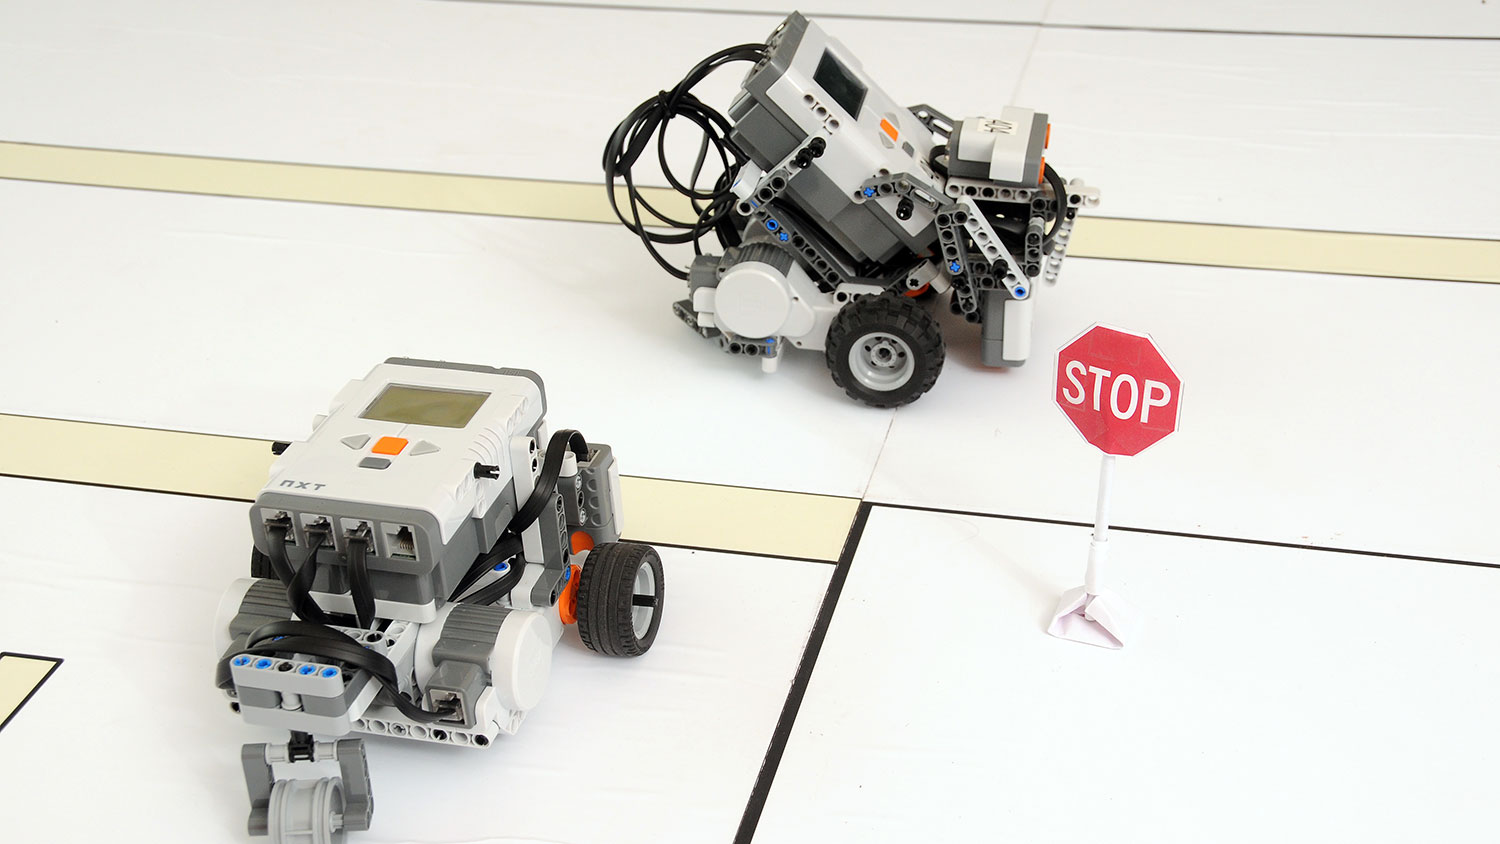 Dr. Mo-Yuen Chow's team's robot cars used to simulate driving in his EB2 lab. (Photo: Roger Winstead, 2010)